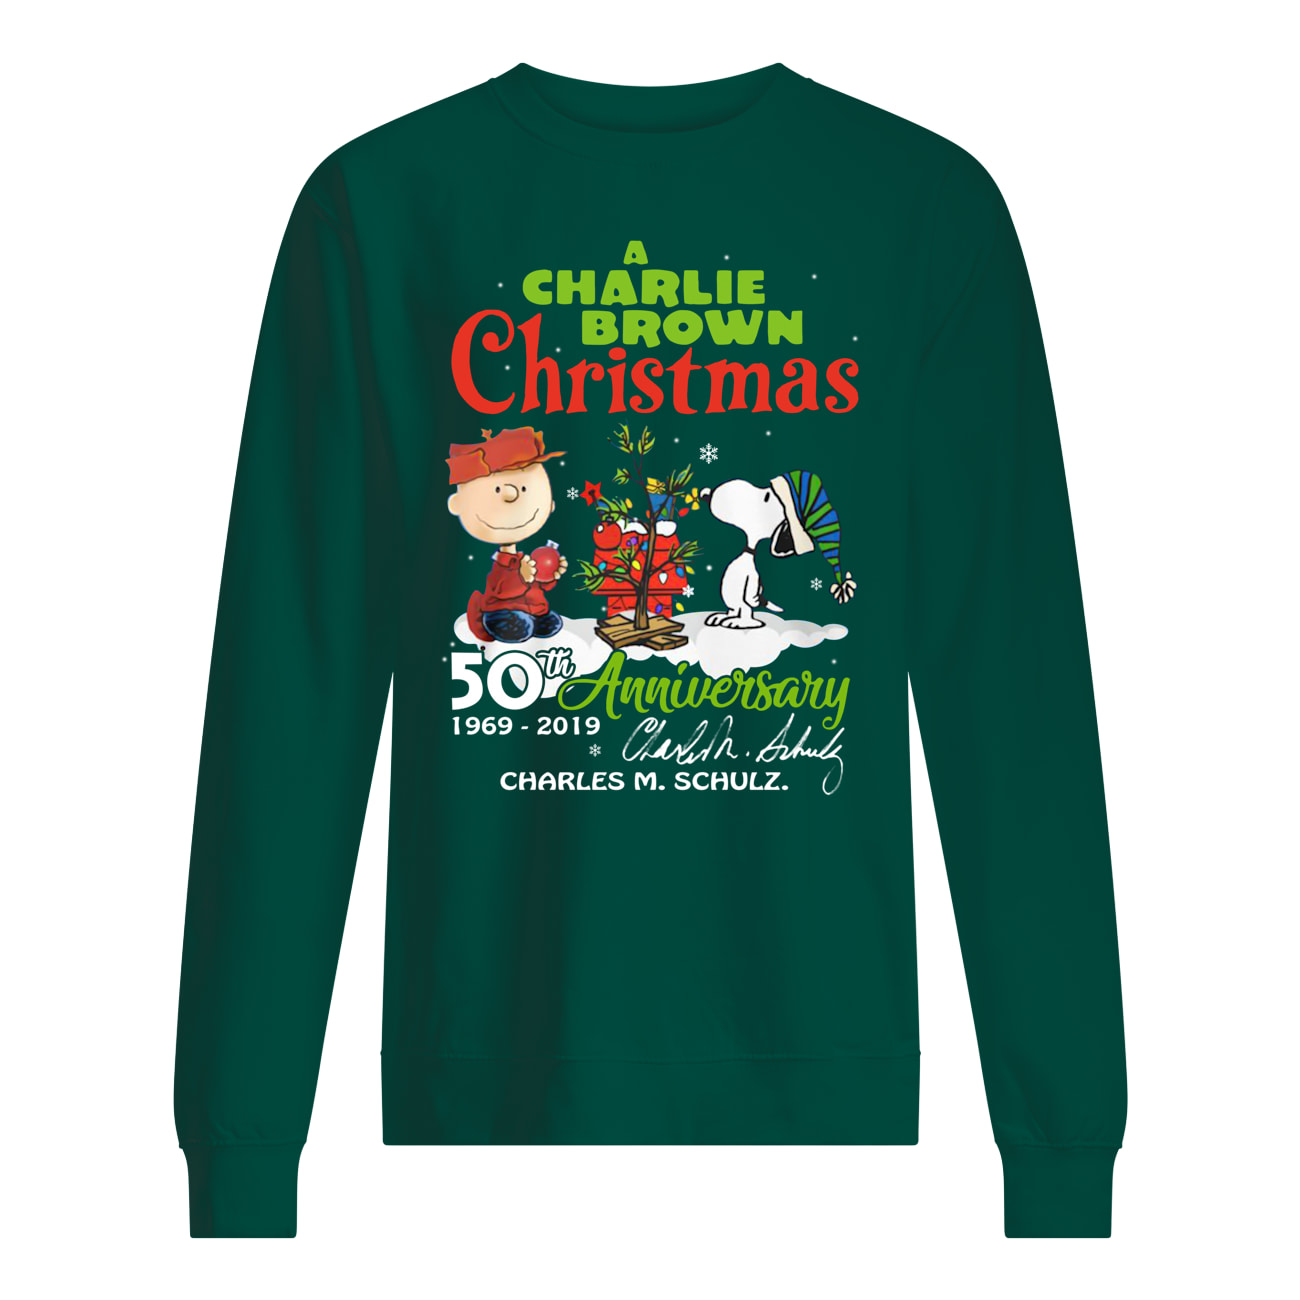 A charlie brown christmas 50th anniversary sweatshirt